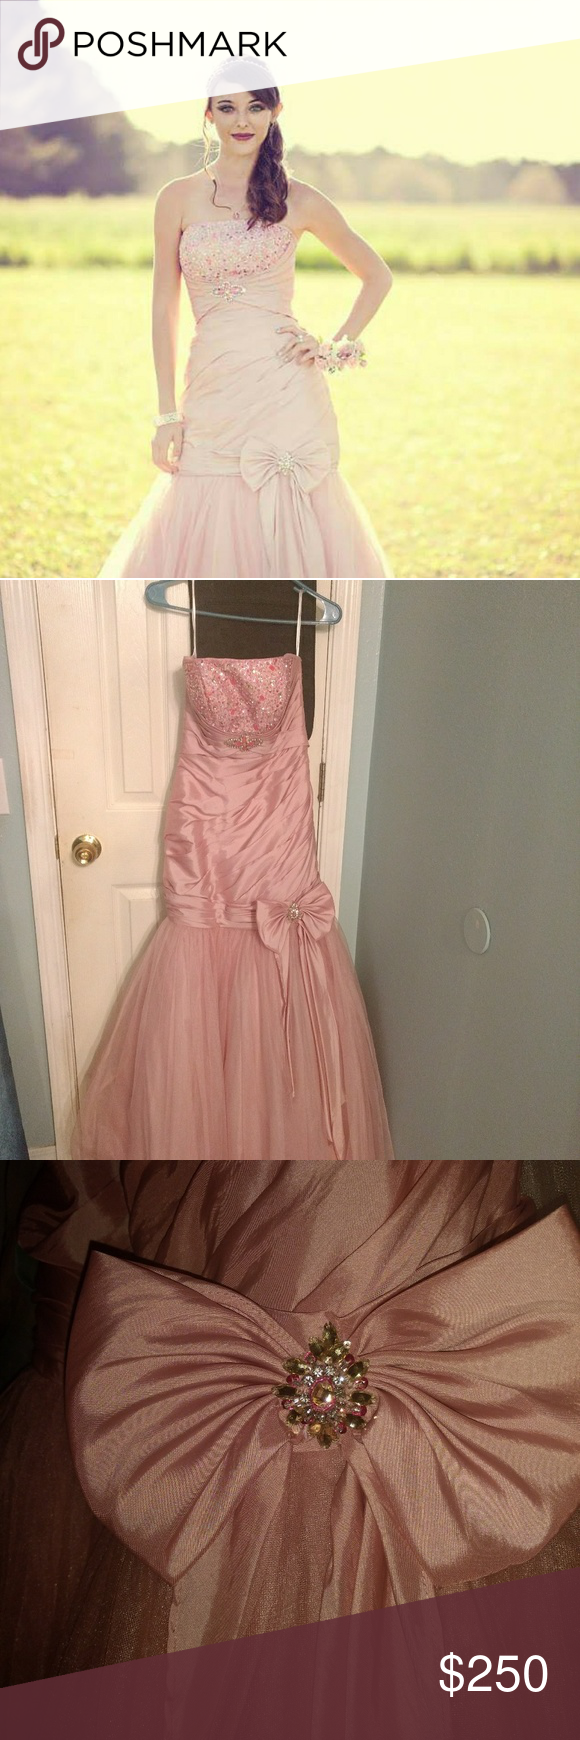 Pink tiffany formal mermaid gown mermaid gown tiffany dresses and